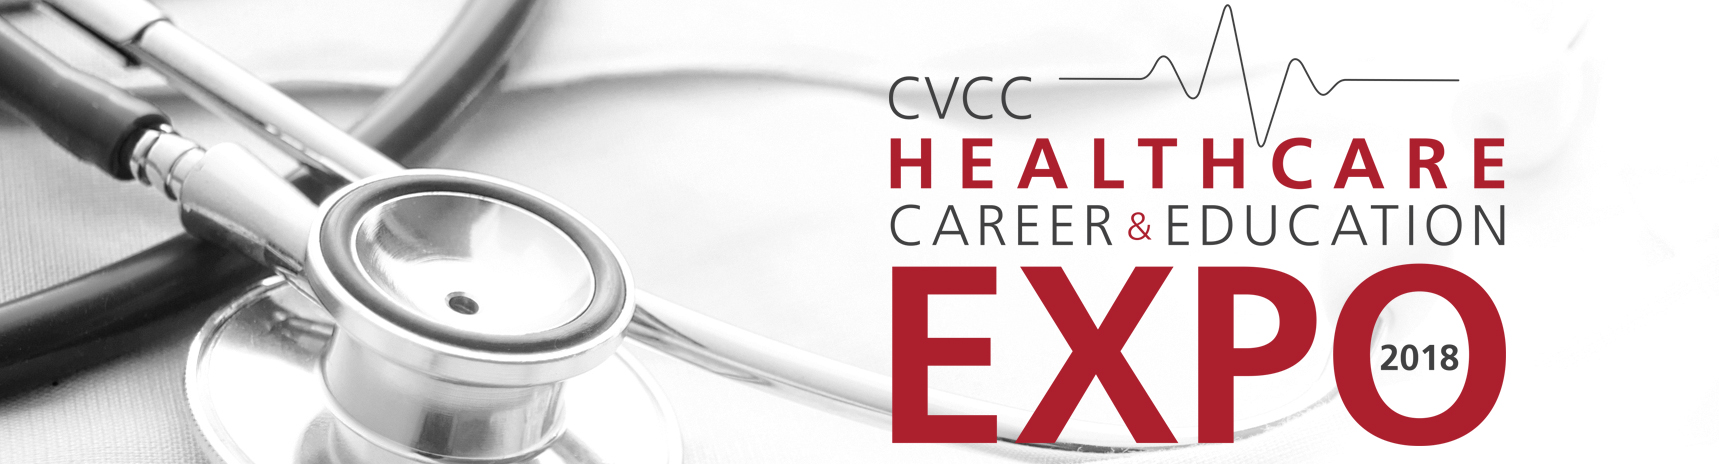 2018 Healthcare Career Education Expo